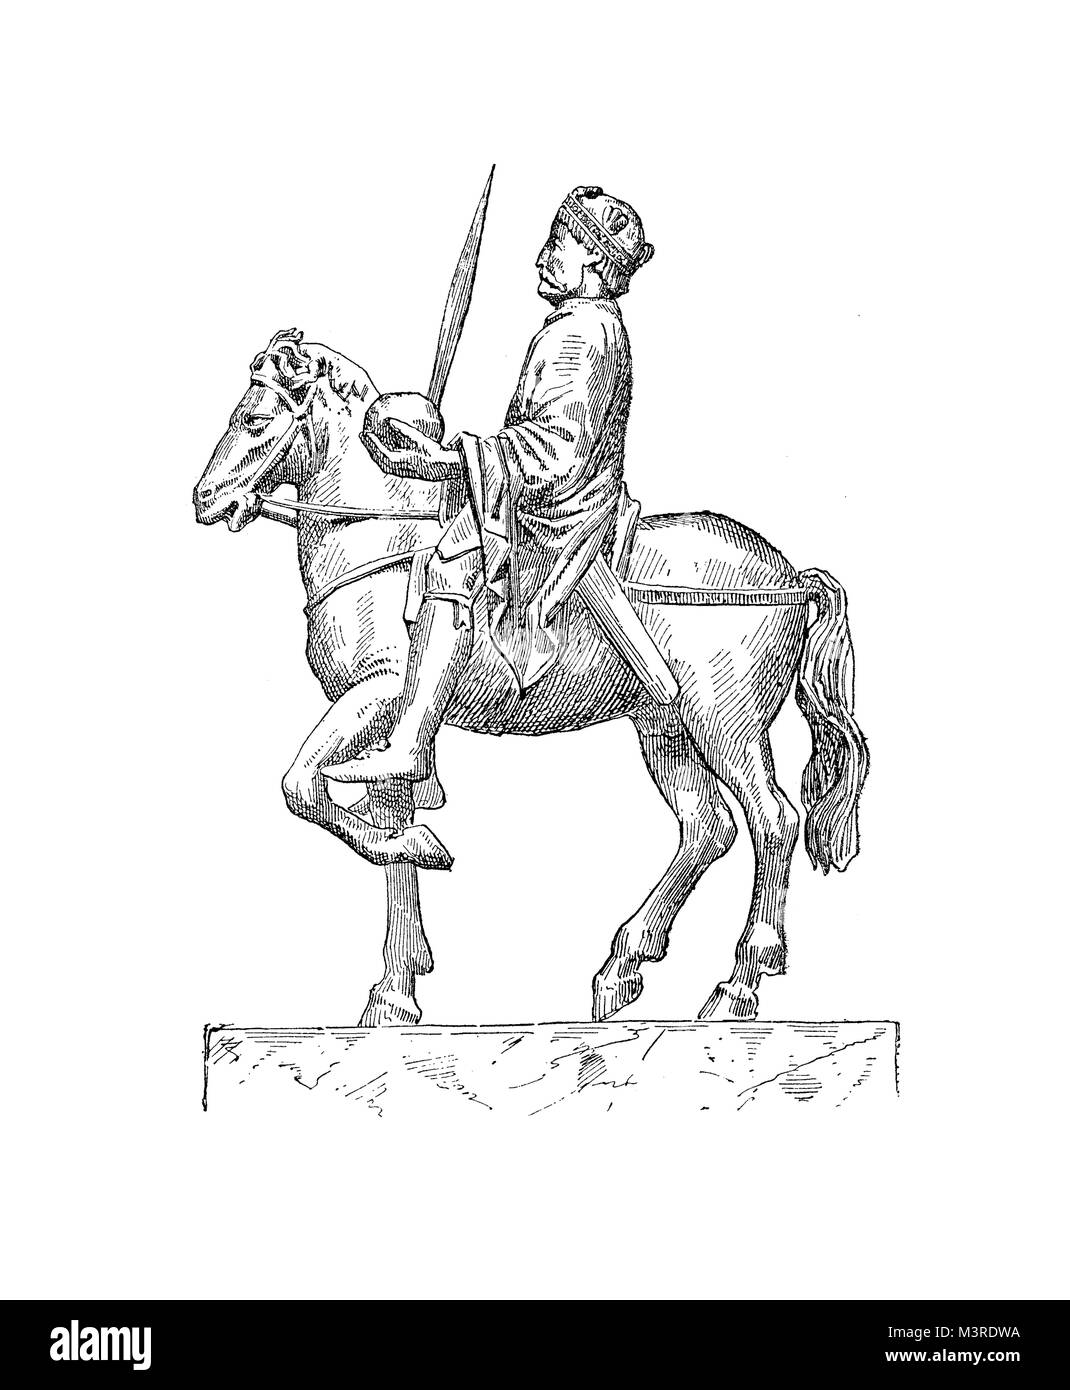 Medieval bronze statuette of Charlemagne or Charles the Great  Holy Roman emperor horseback - Stock Image